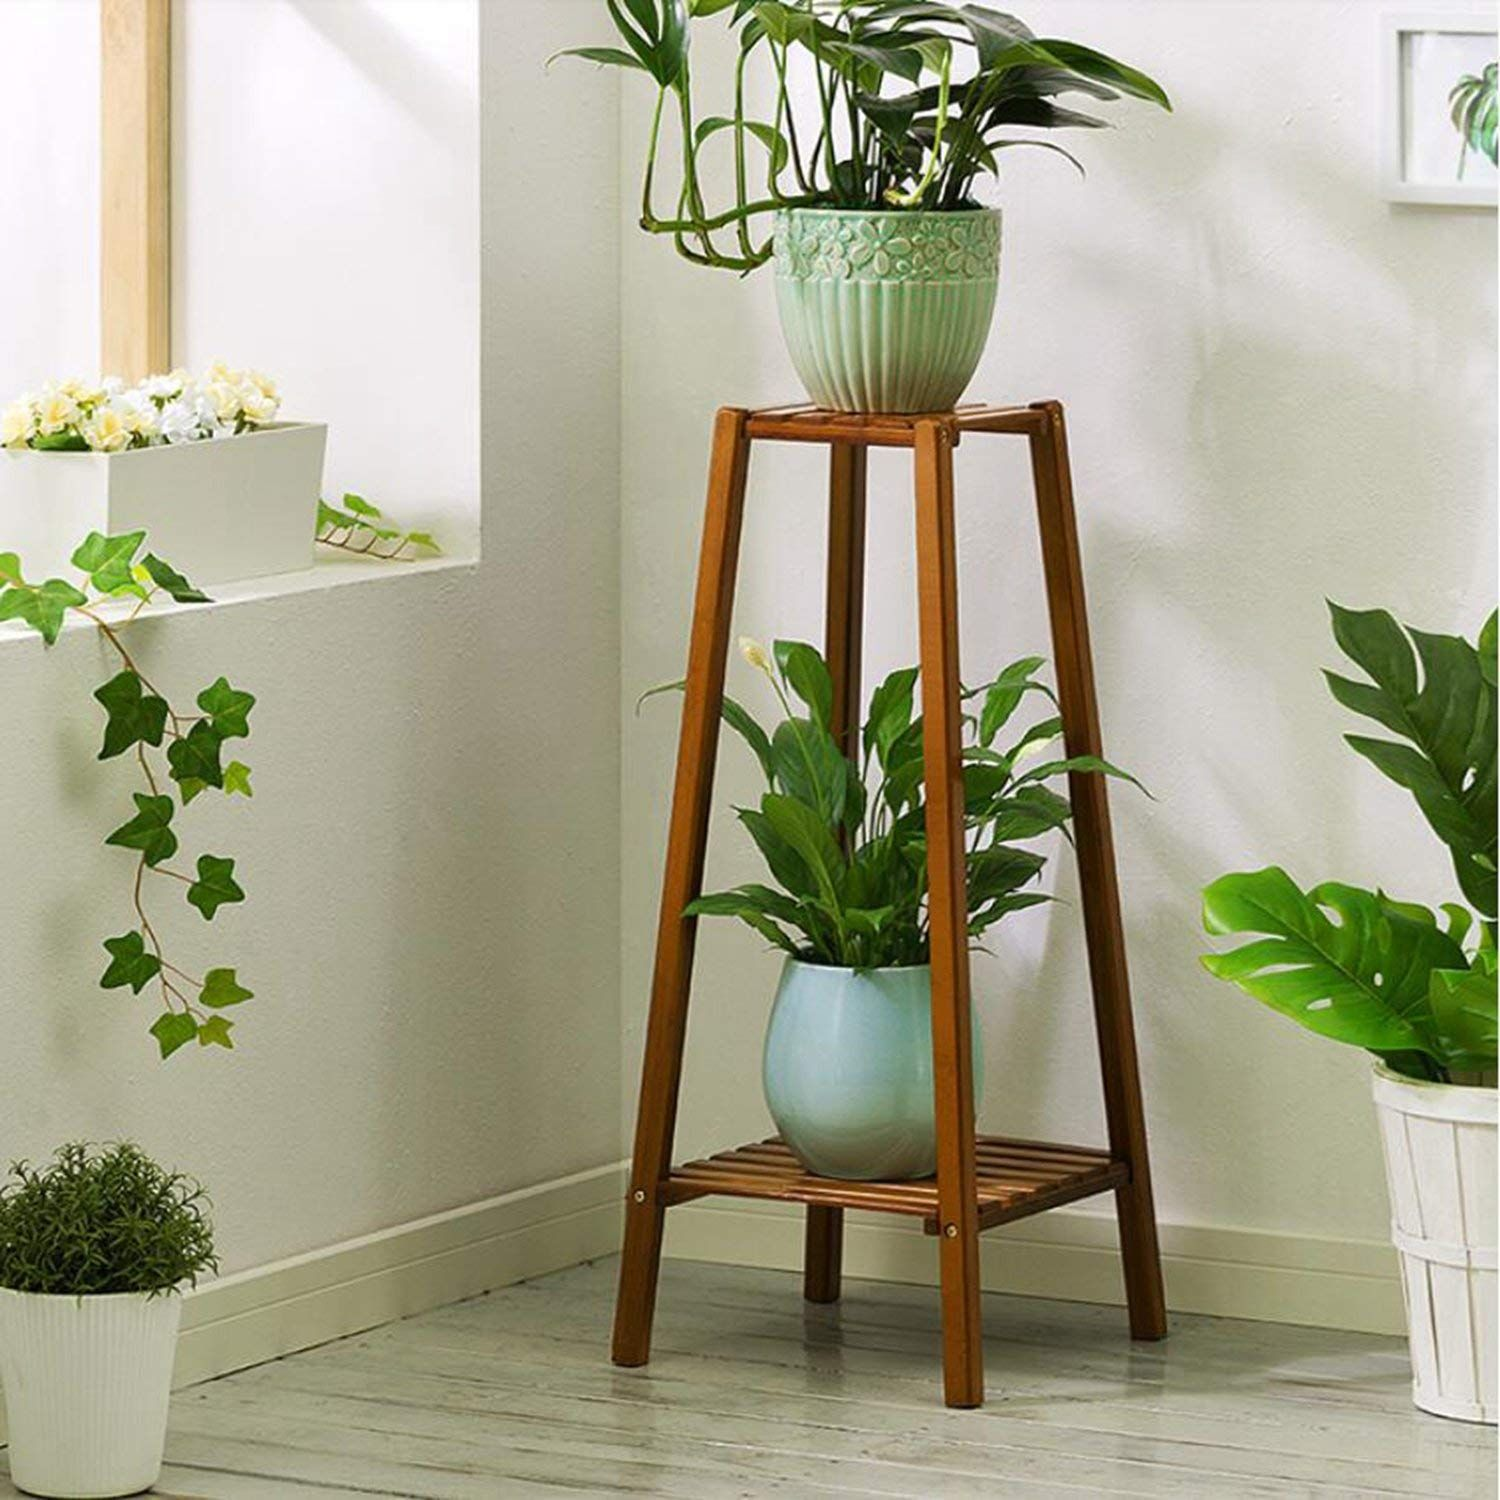 Home in 2020 Tall plant stands, Table for small space